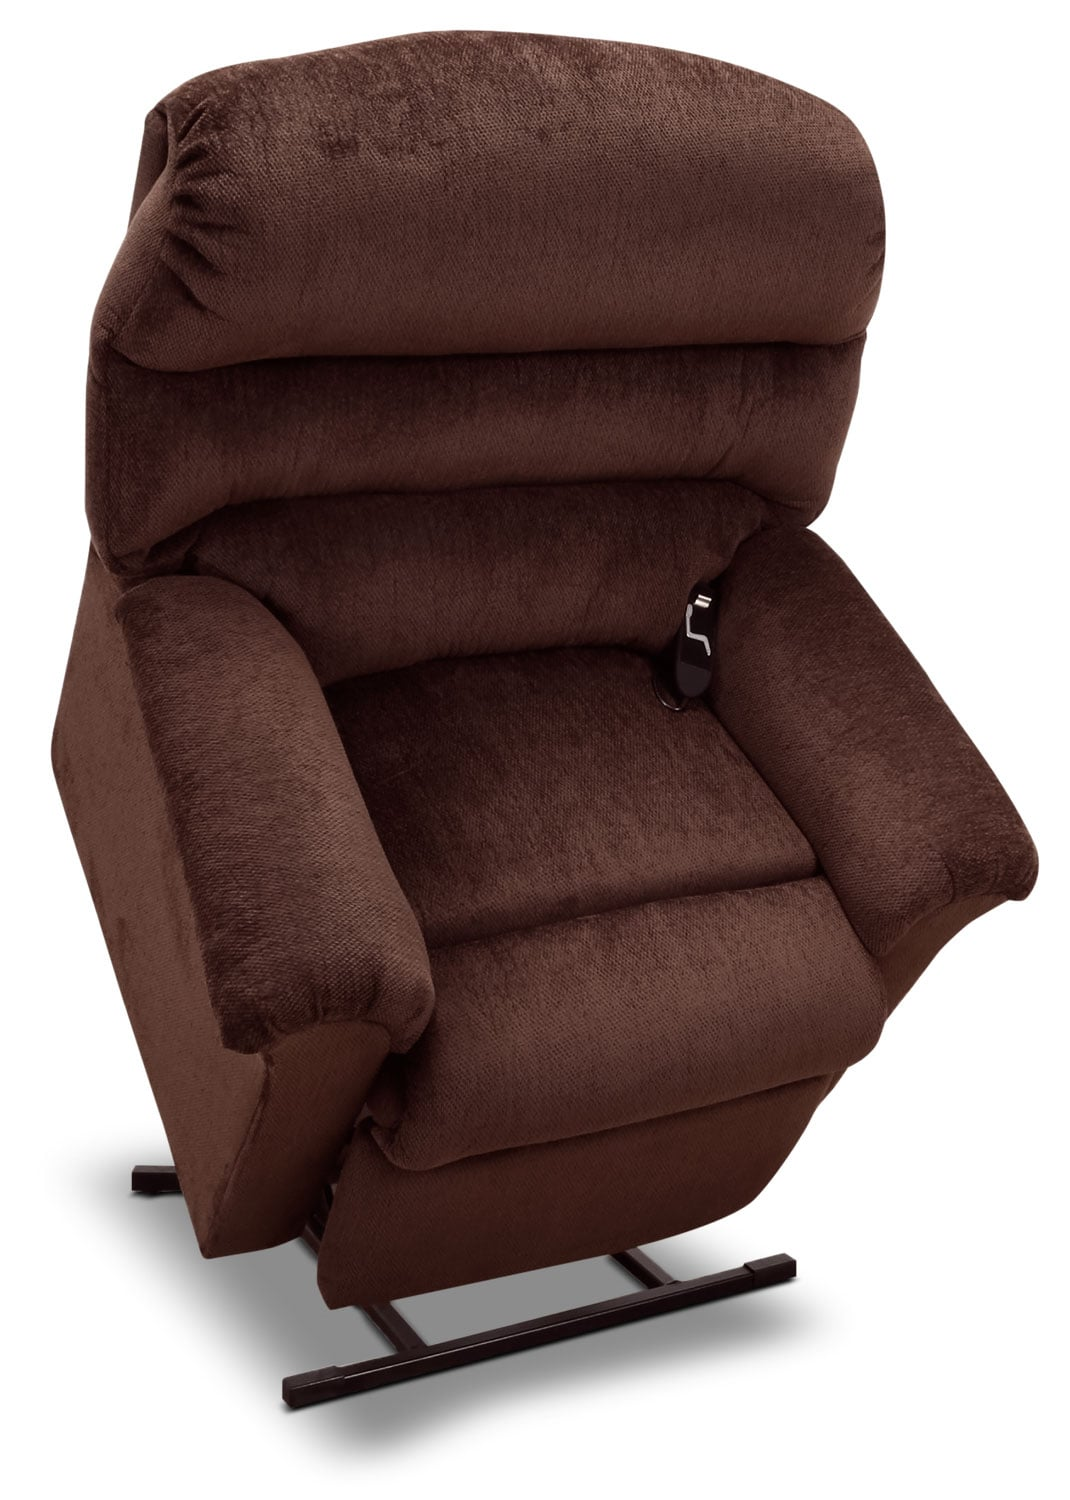 477 Chenille 3-Position Power Lift Chair – Walnut